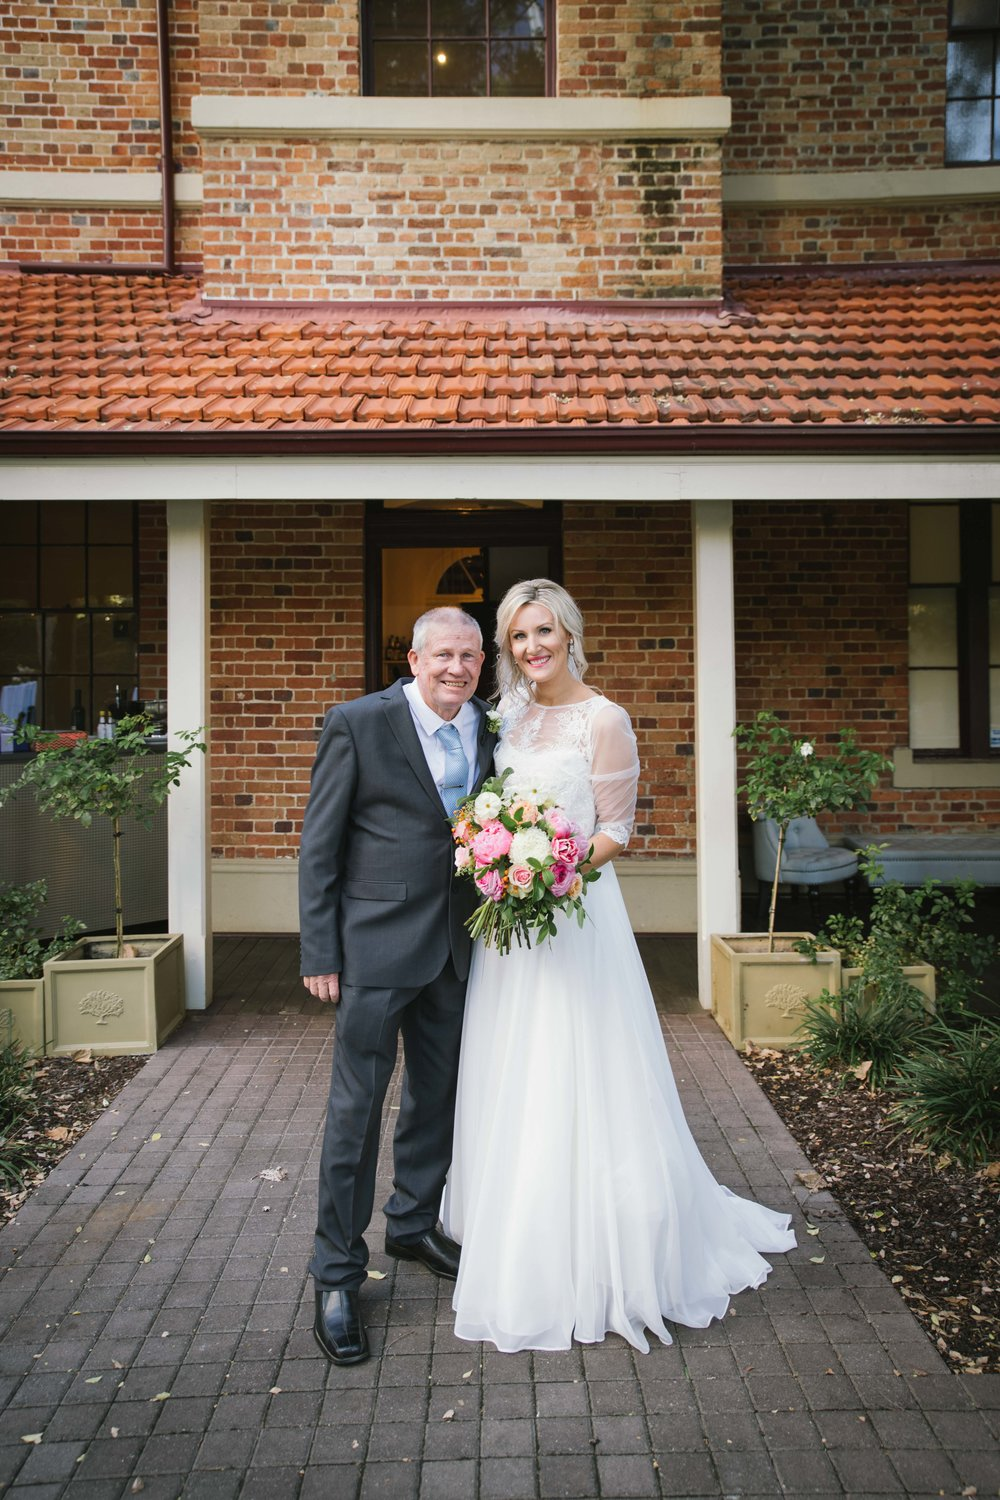 Lamonts Bishops House City Urban Perth Wheatbelt Avon Valley Wedding Photographer Photography (9).jpg